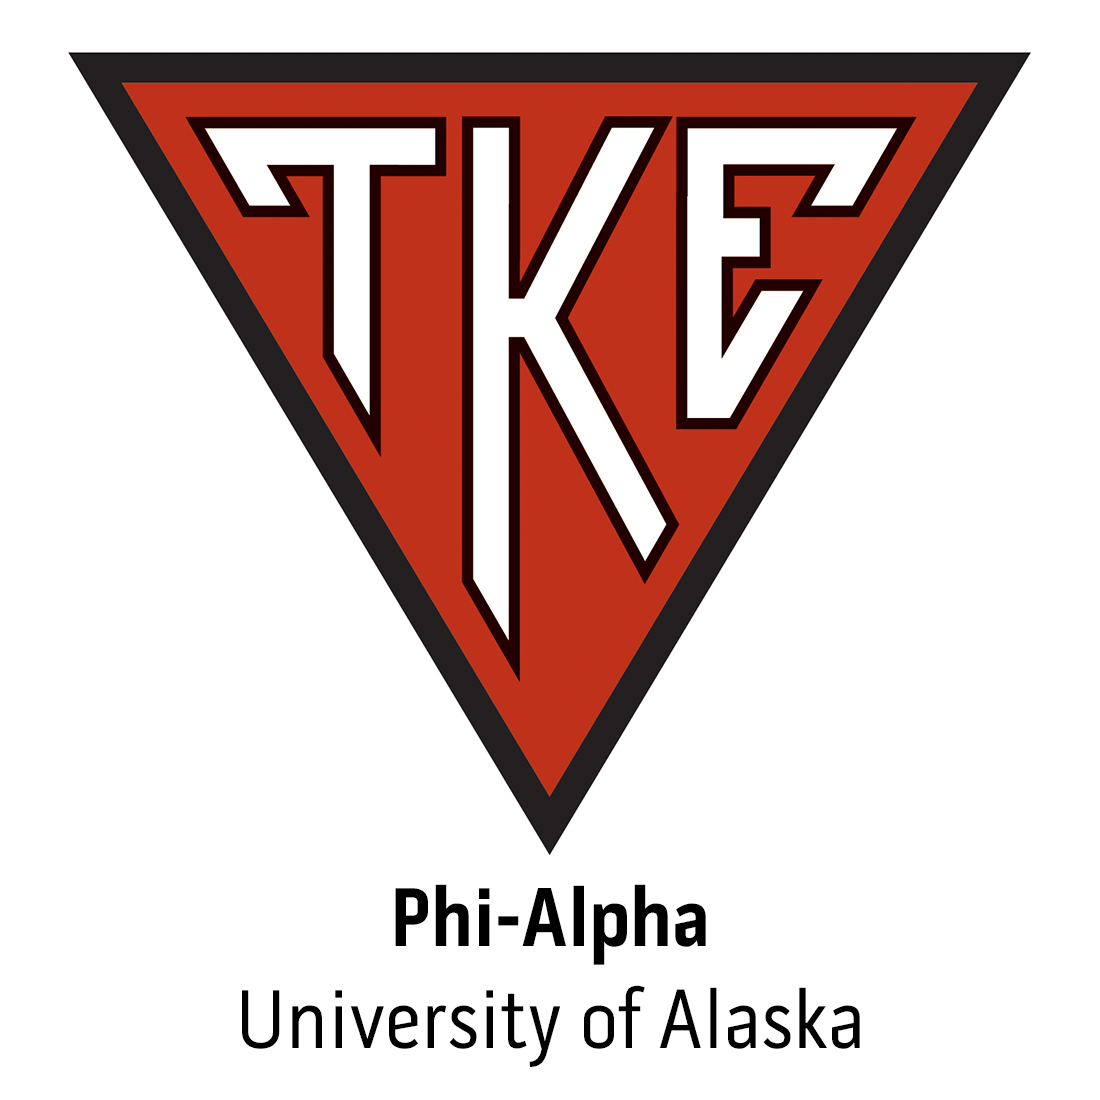 Phi-Alpha Chapter at University of Alaska